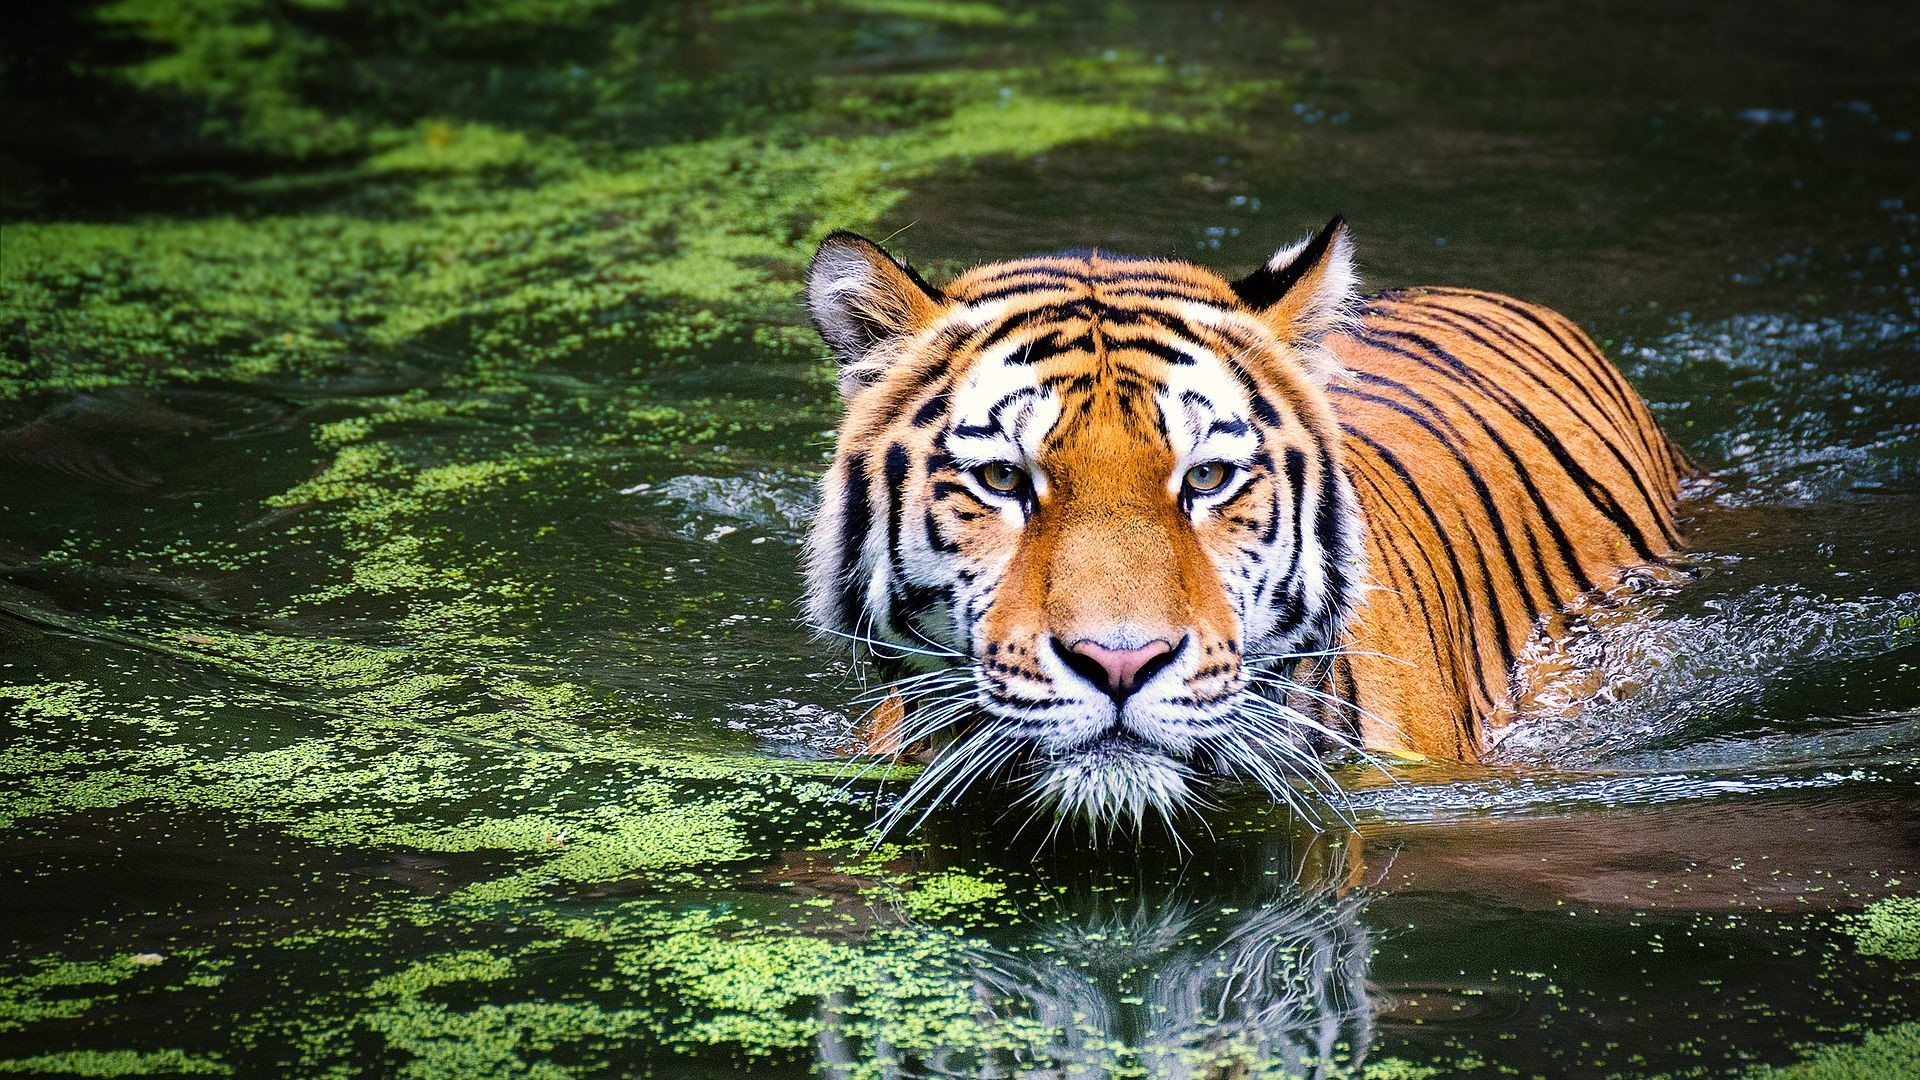 1920x1080 Tiger in Pond